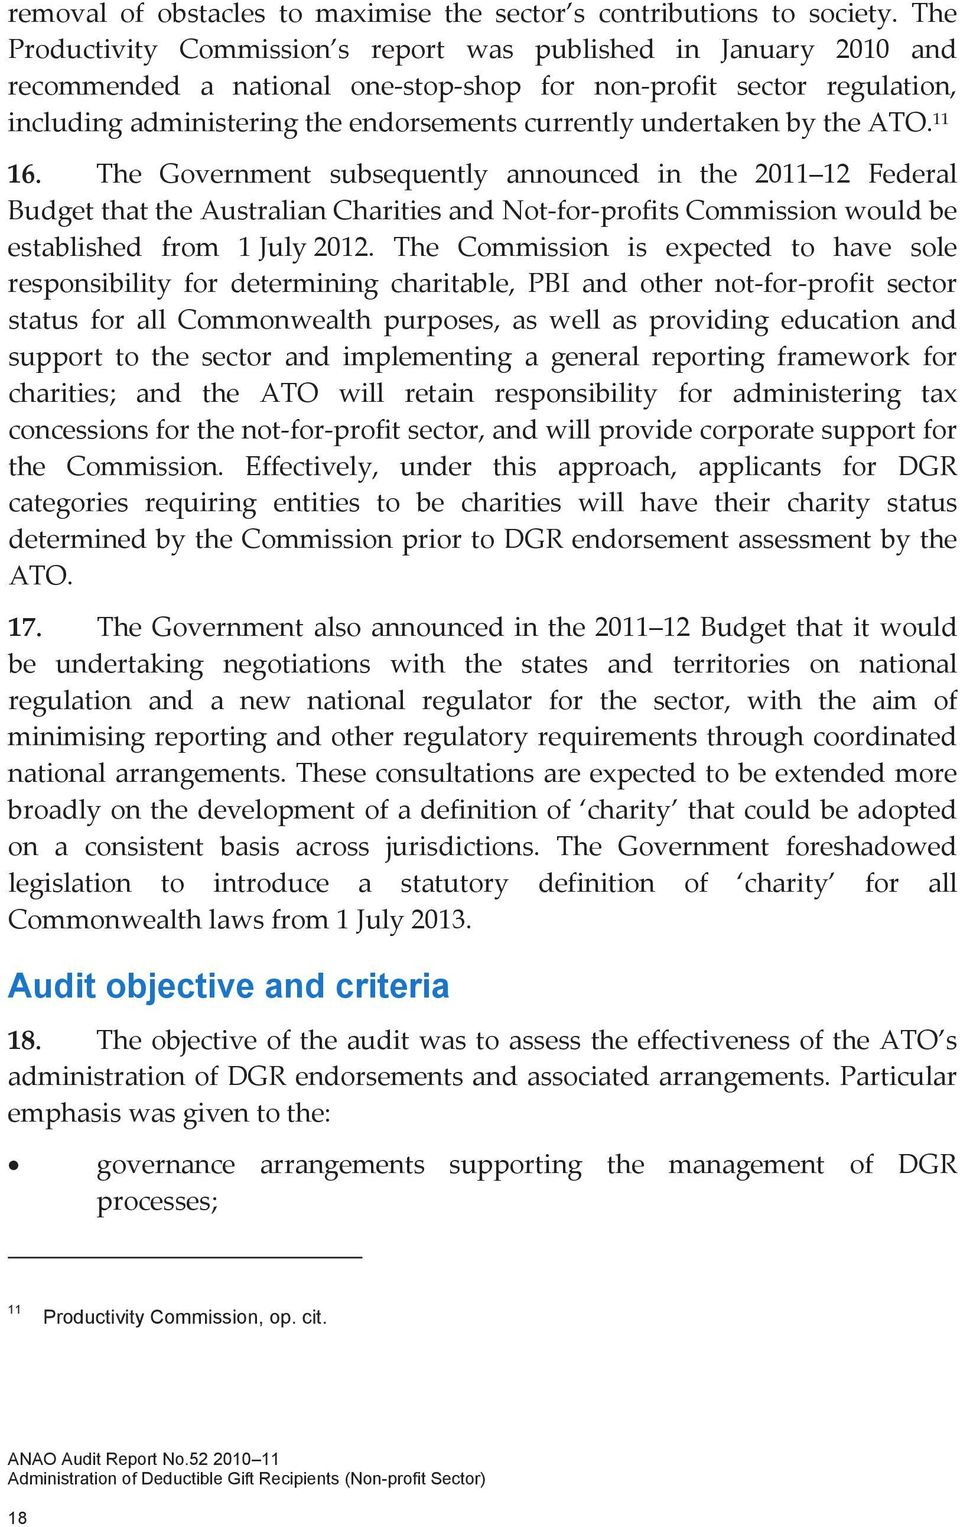 undertaken by the ATO. 11 16. The Government subsequently announced in the 2011 12 Federal Budget that the Australian Charities and Not for profits Commission would be established from 1 July 2012.